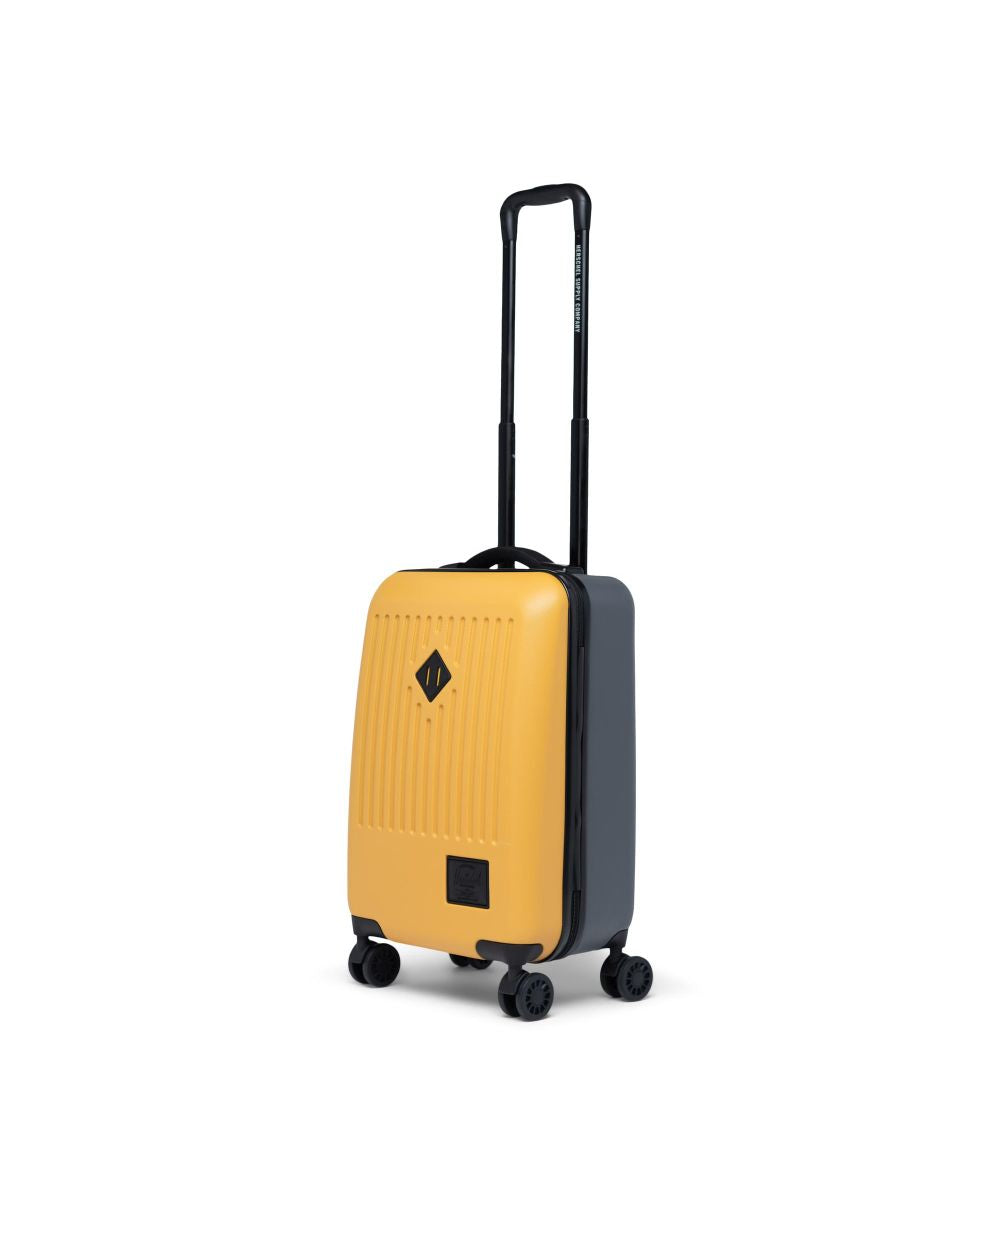 TRADE LUGGAGE SMALL - NUGGET GOLD/DARK SHADOW